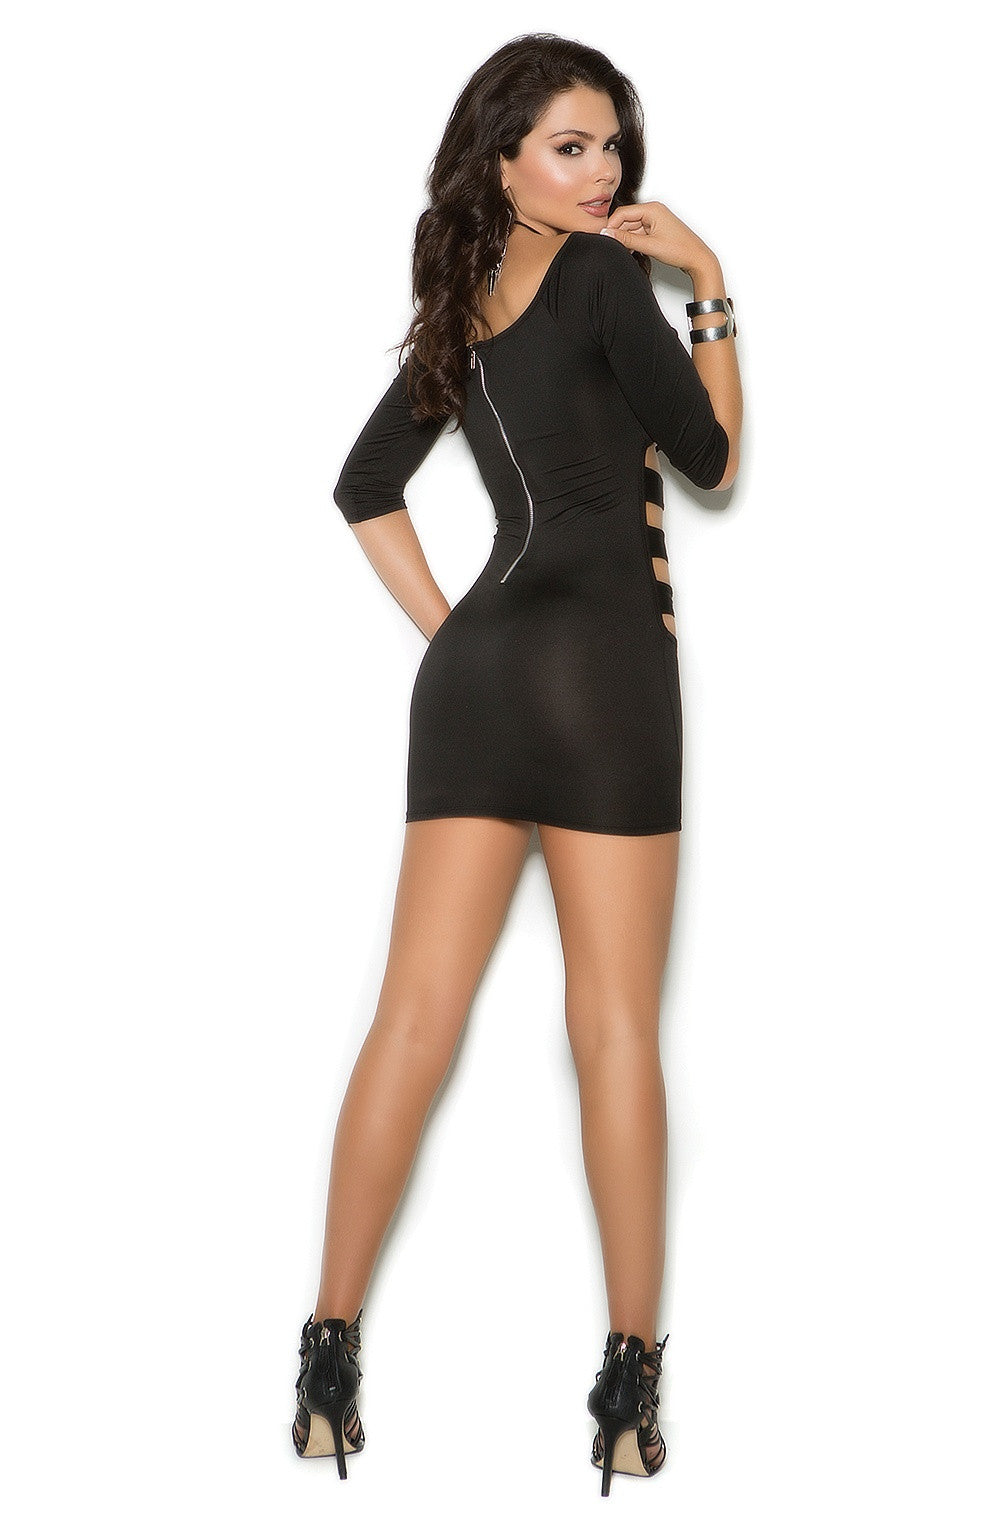 EM-88050 Black sexy dress - Sexylingerieland